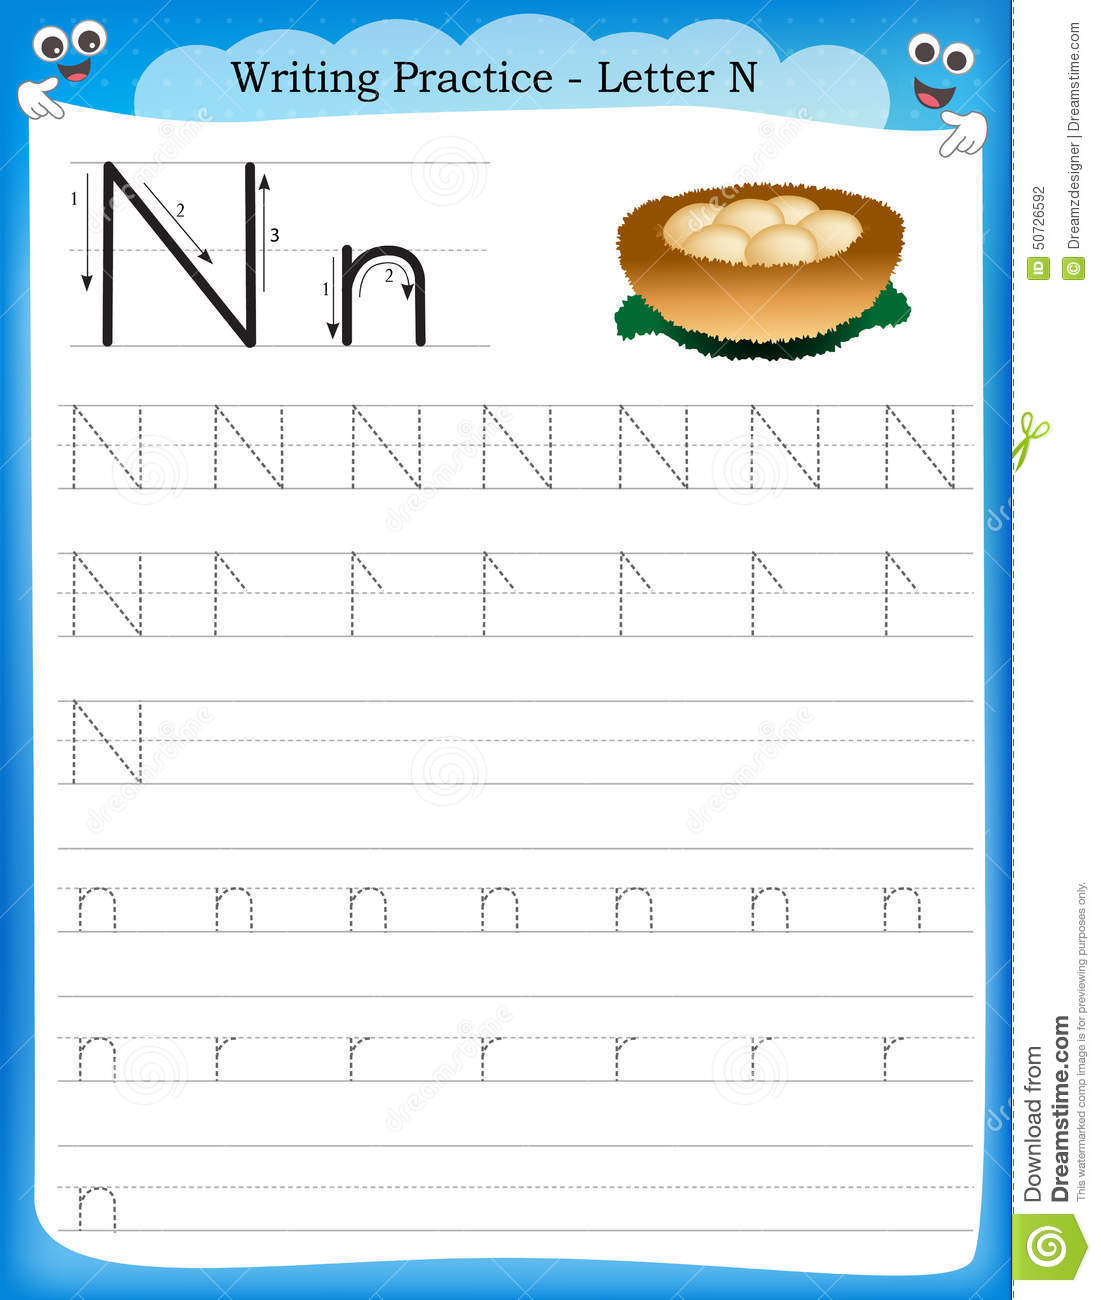 math worksheet : writing practice letter n stock vector  image 50726592 : Letter N Worksheets Kindergarten